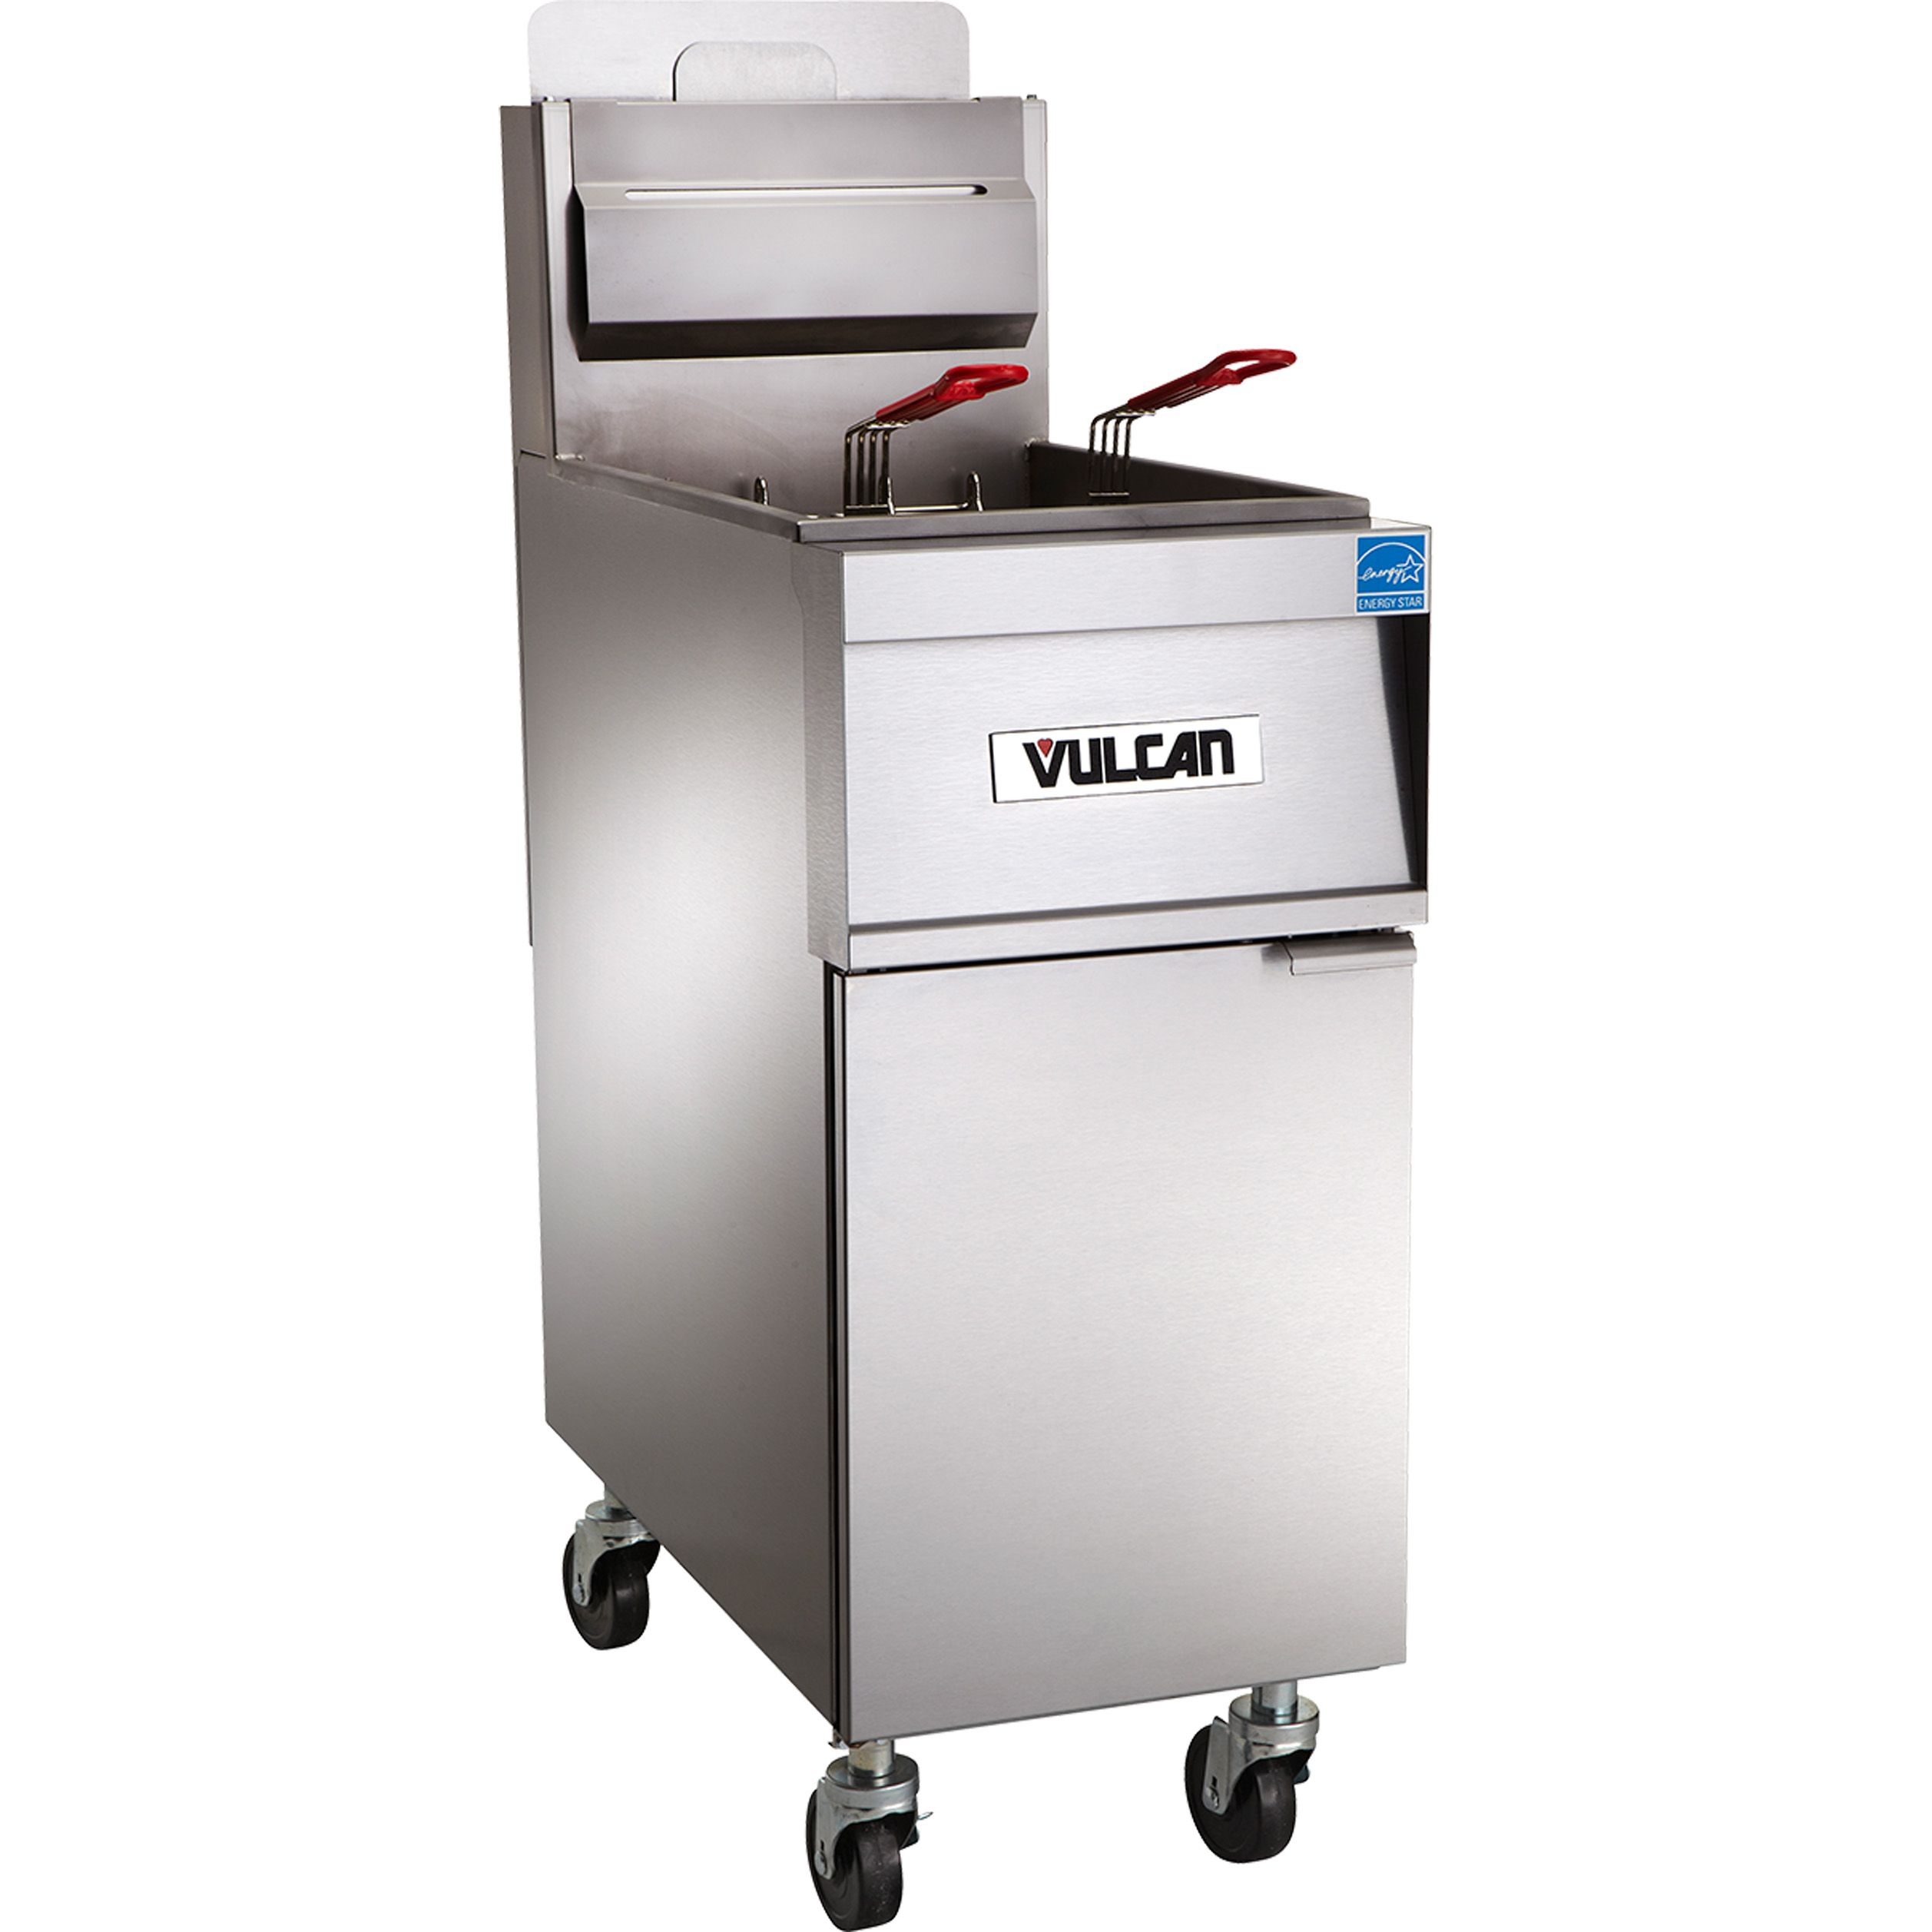 Vulcan 4TR65DF fryer, gas, multiple battery